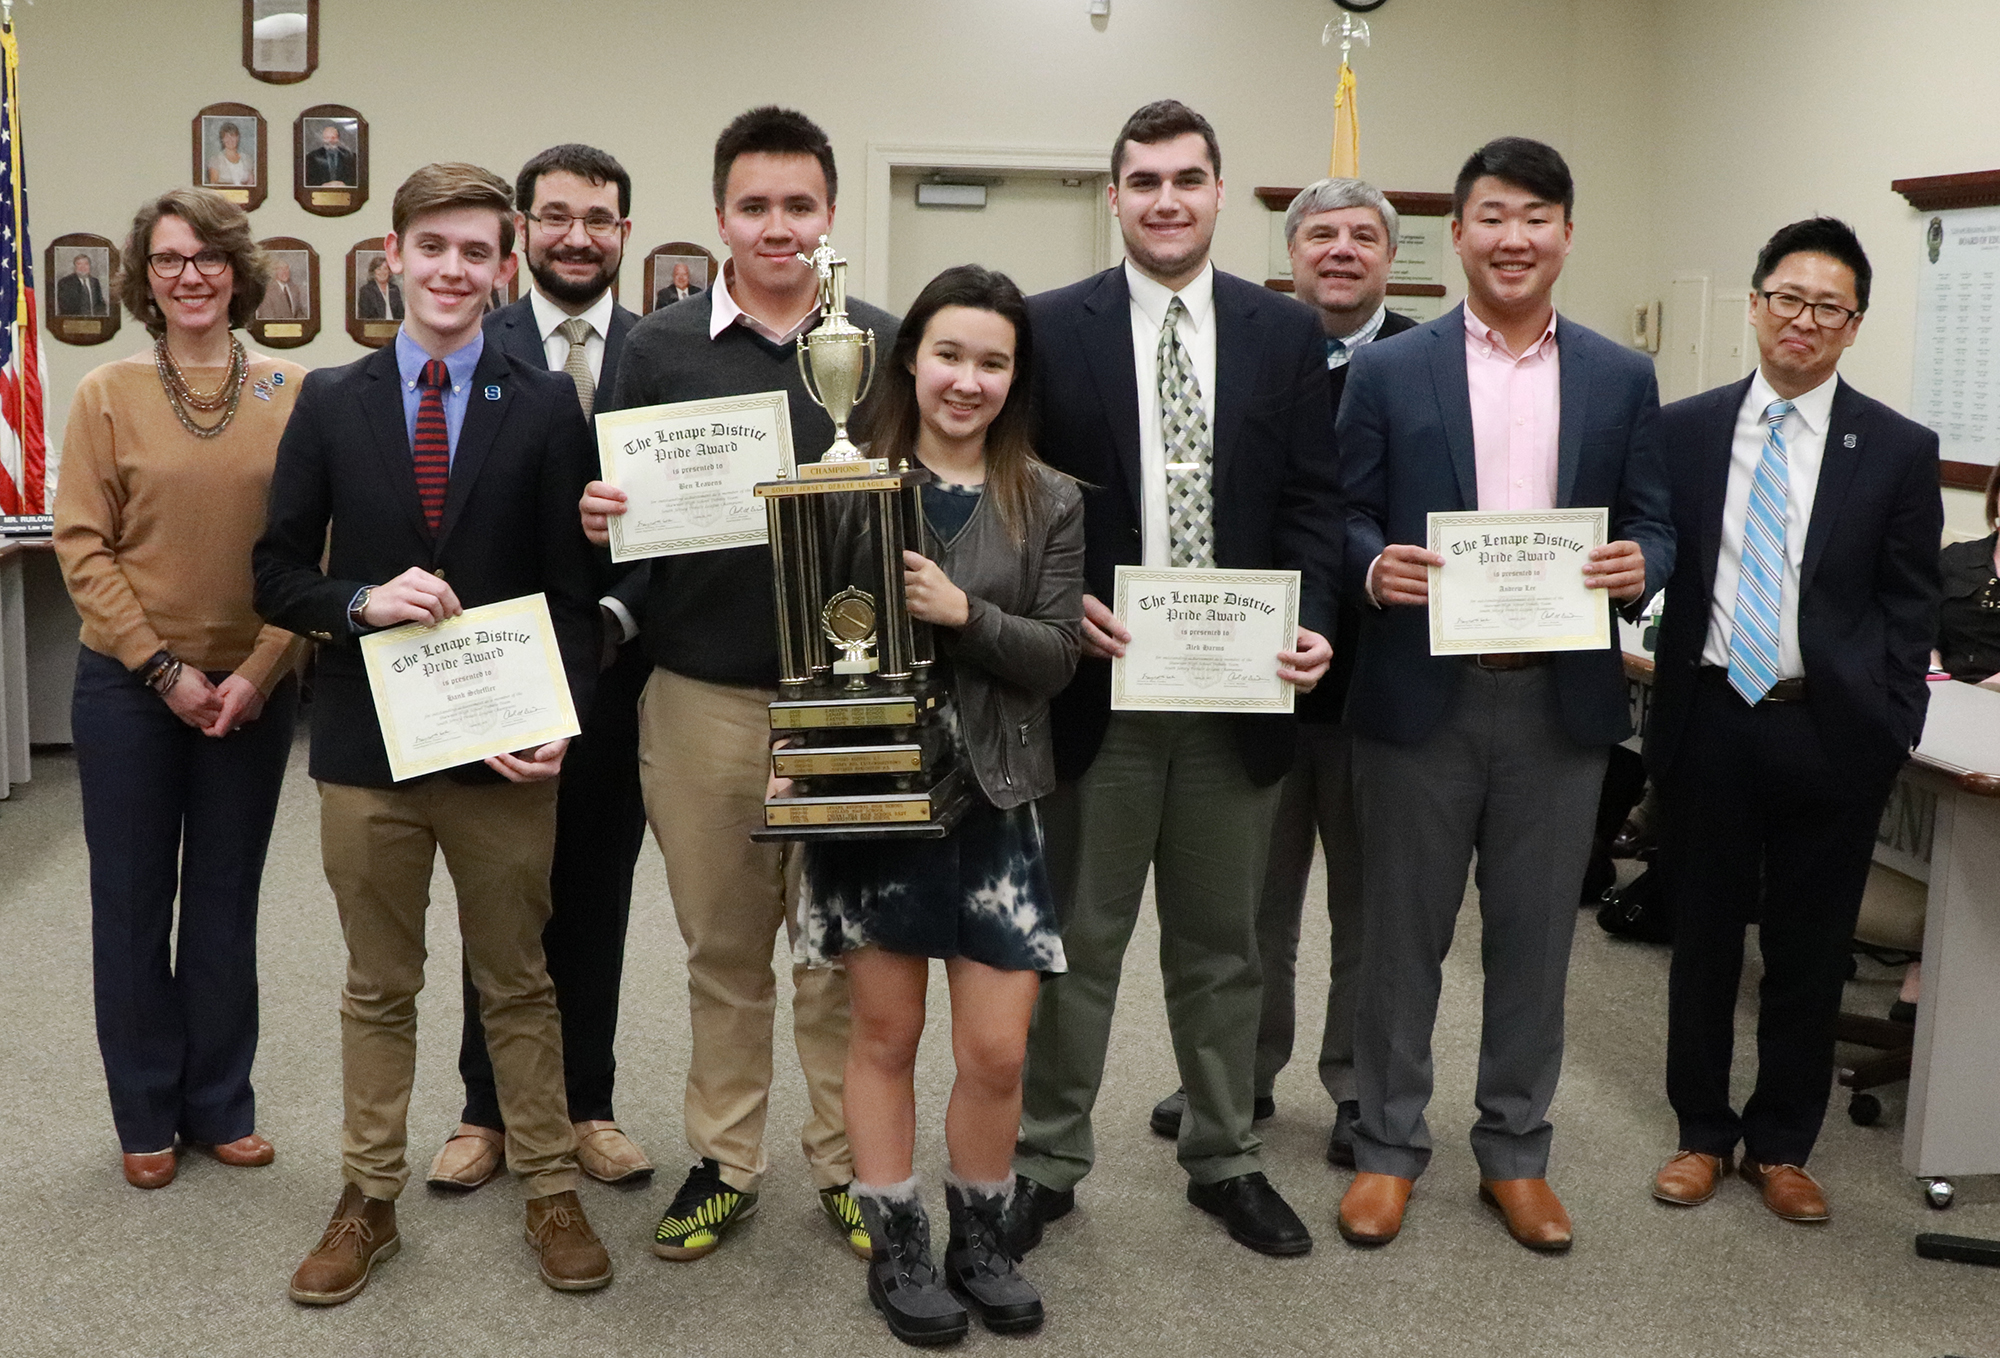 Shawnee High School Debate Team being recognized by Board of Education